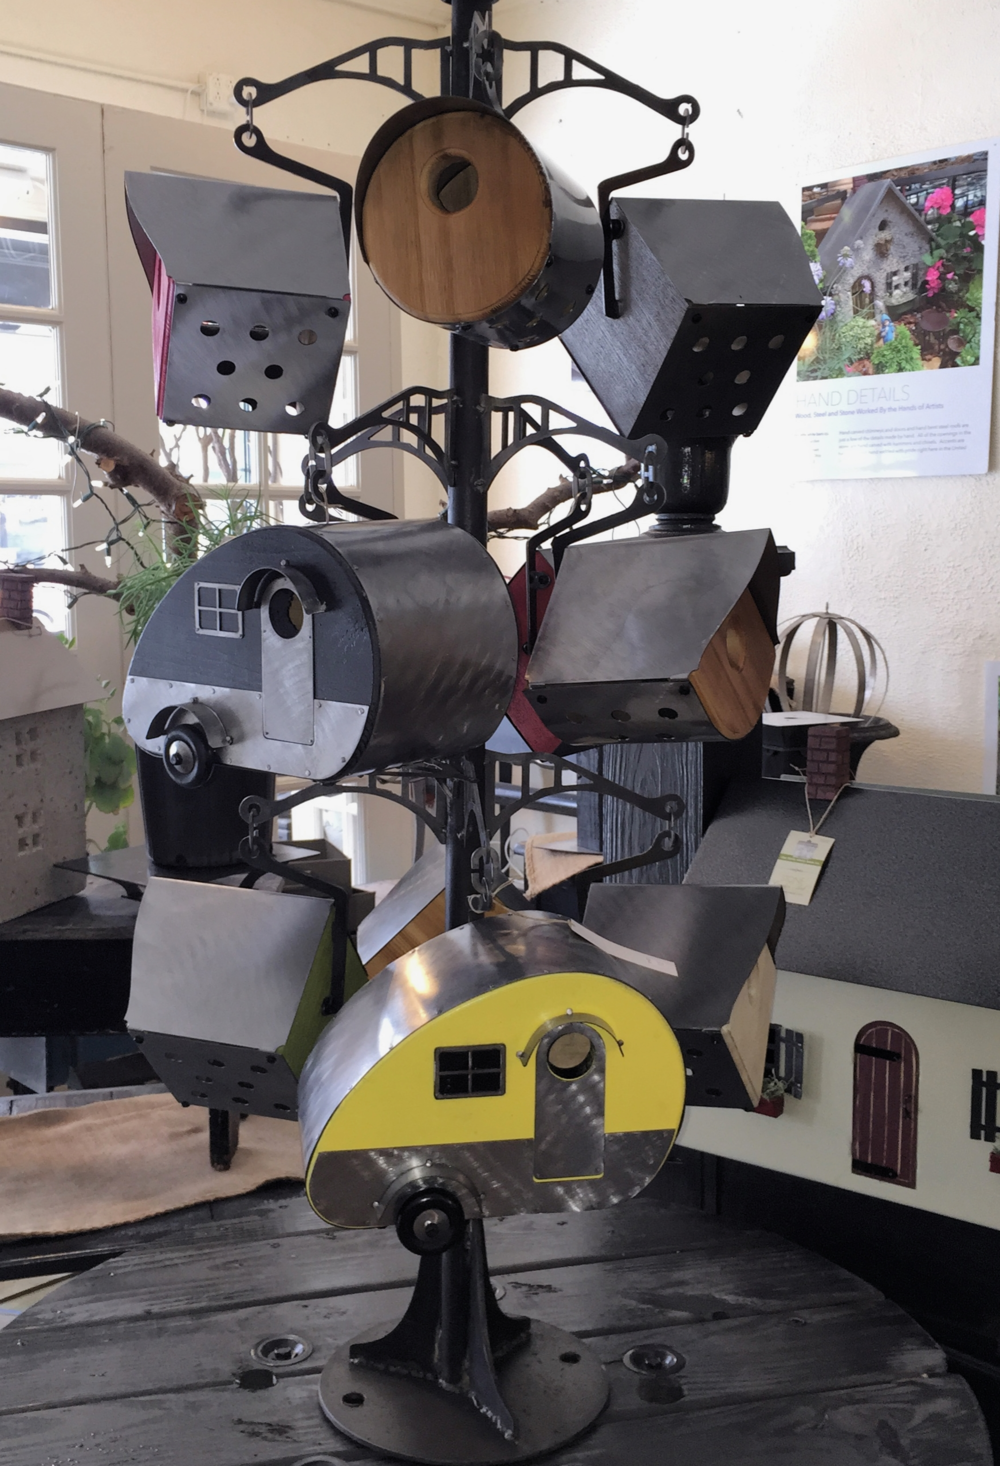 Newly Designed birdhouses have already been selling out both in our own showroom and in our dealers' stores.